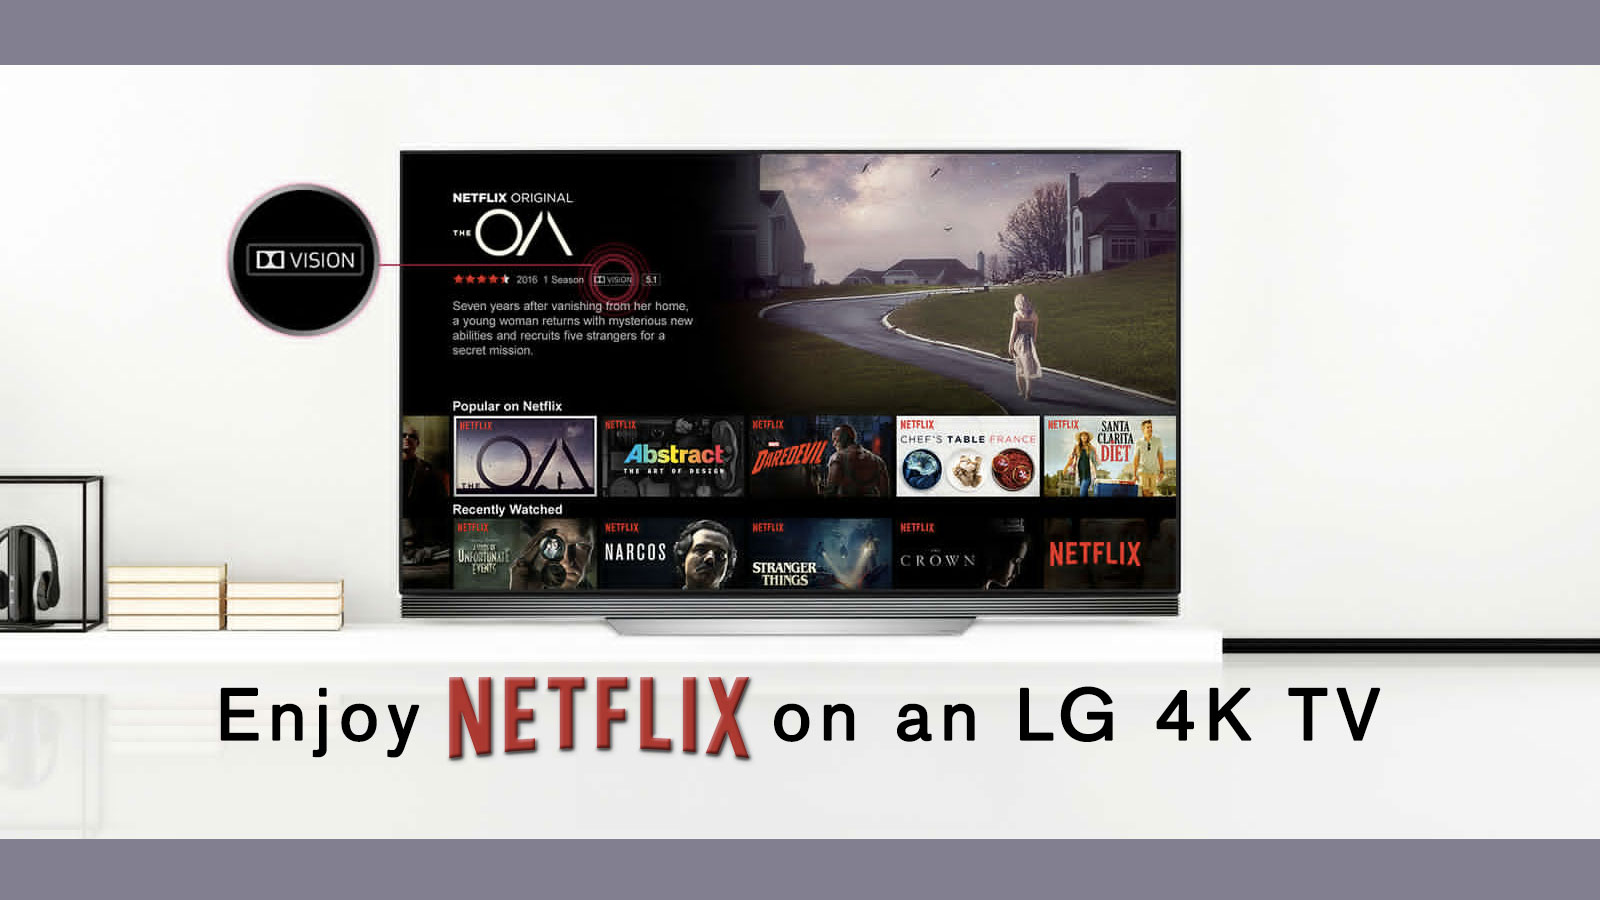 LG gives away 3-month Netflix subscription plans to 4K TV customers